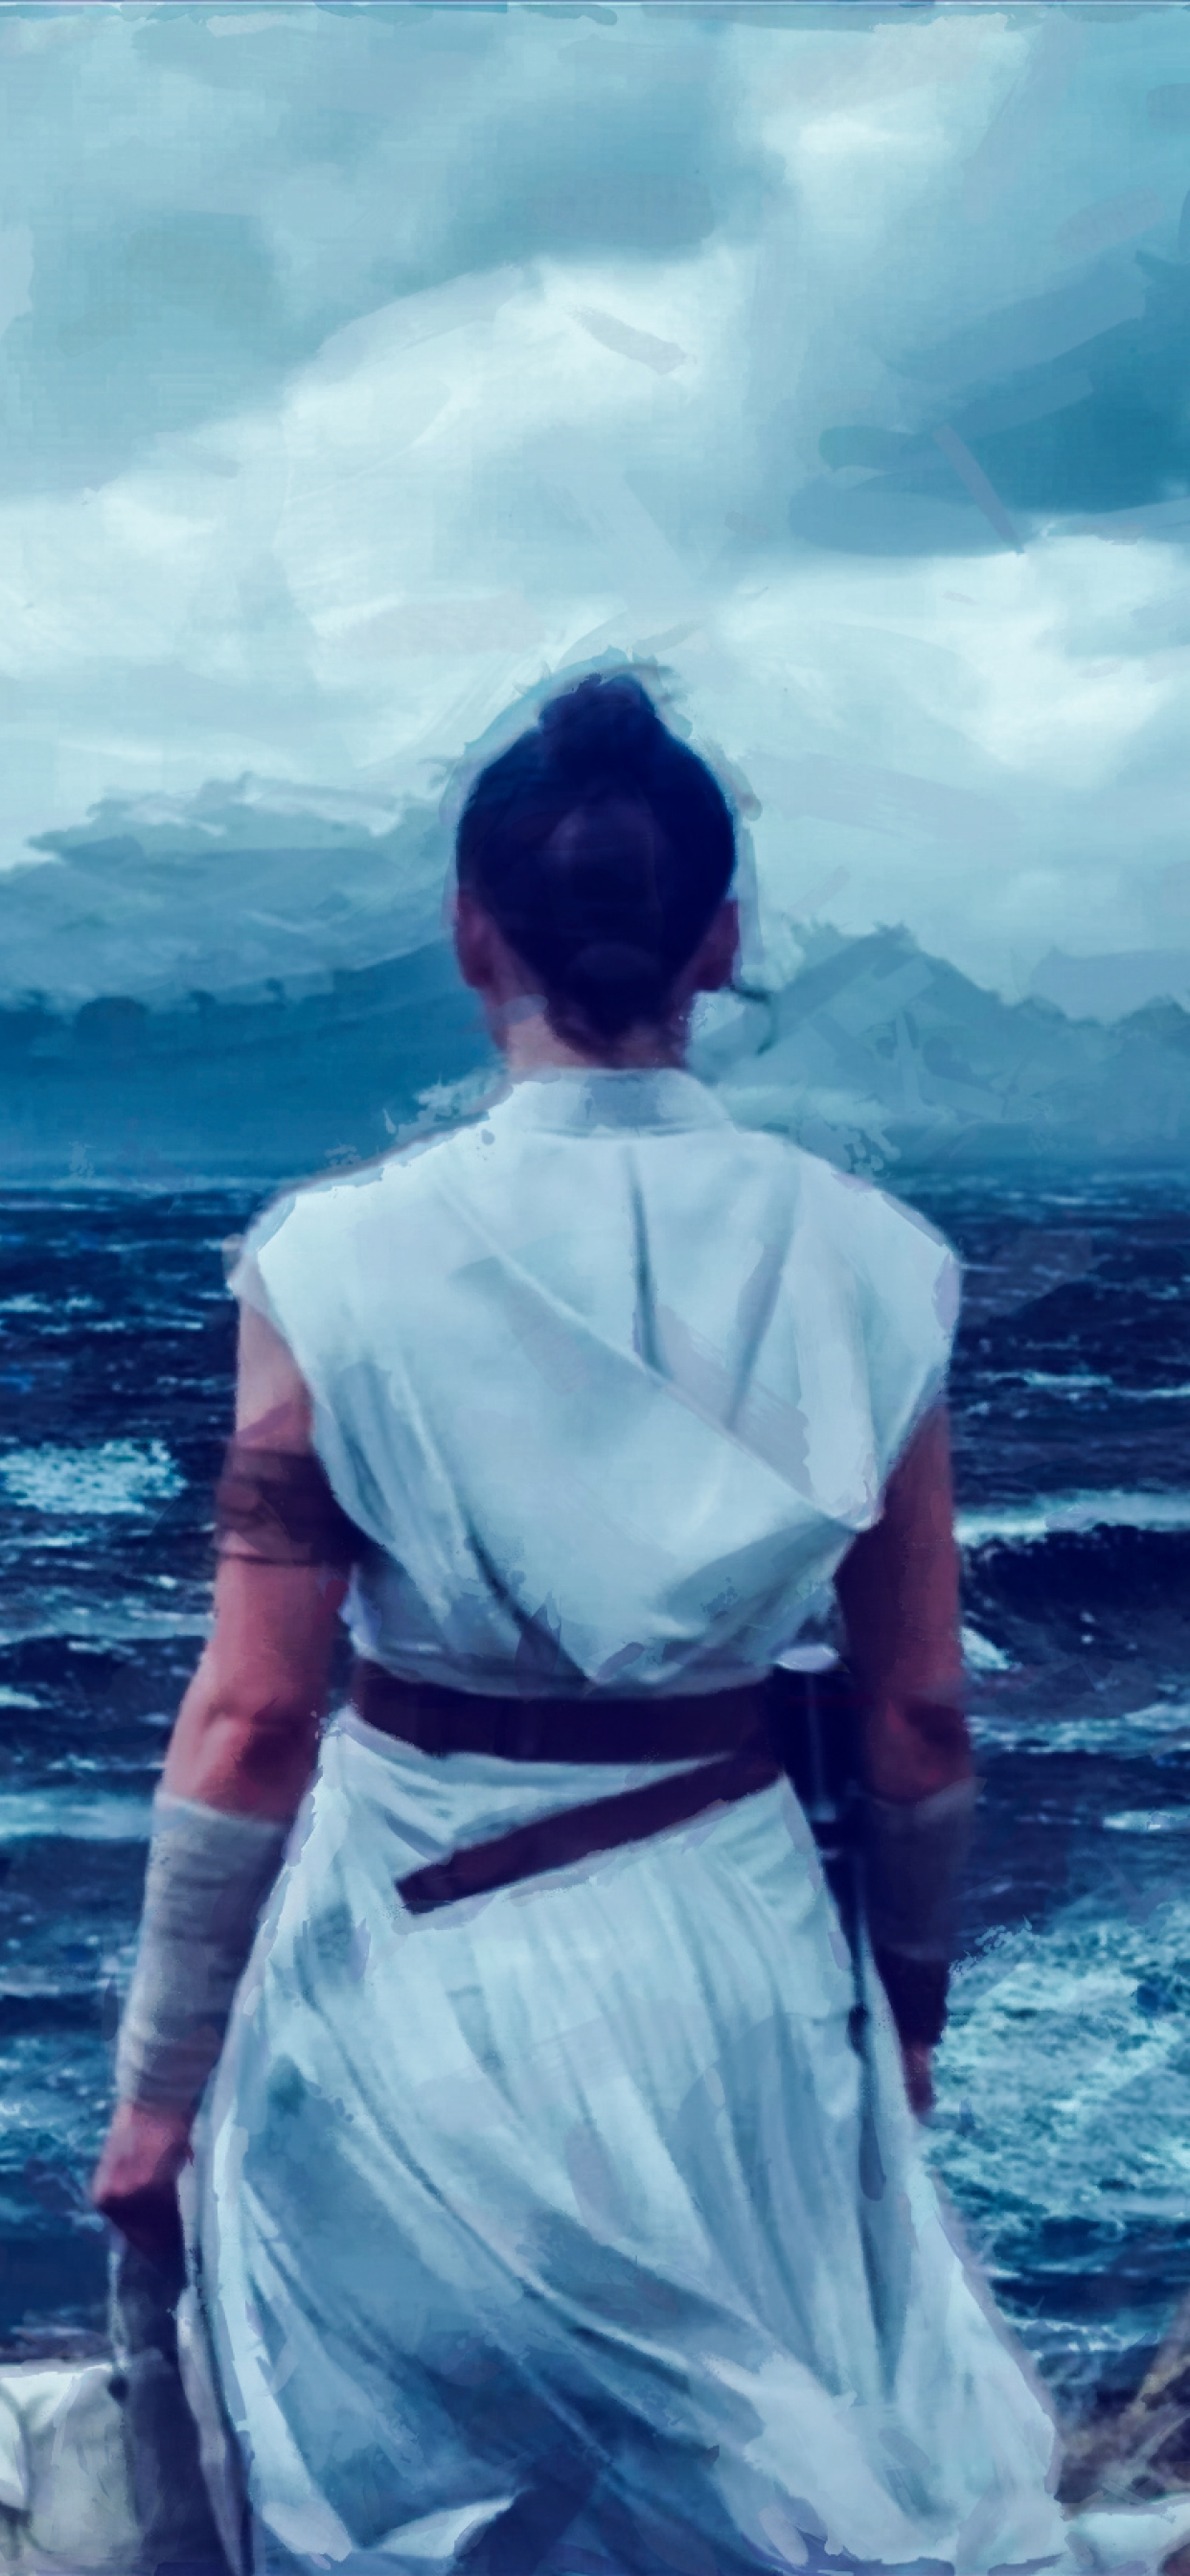 1242x2688 Star Wars Jedi The Rise Of Skywalker Art Iphone Xs Max Wallpaper Hd Artist 4k Wallpapers Images Photos And Background